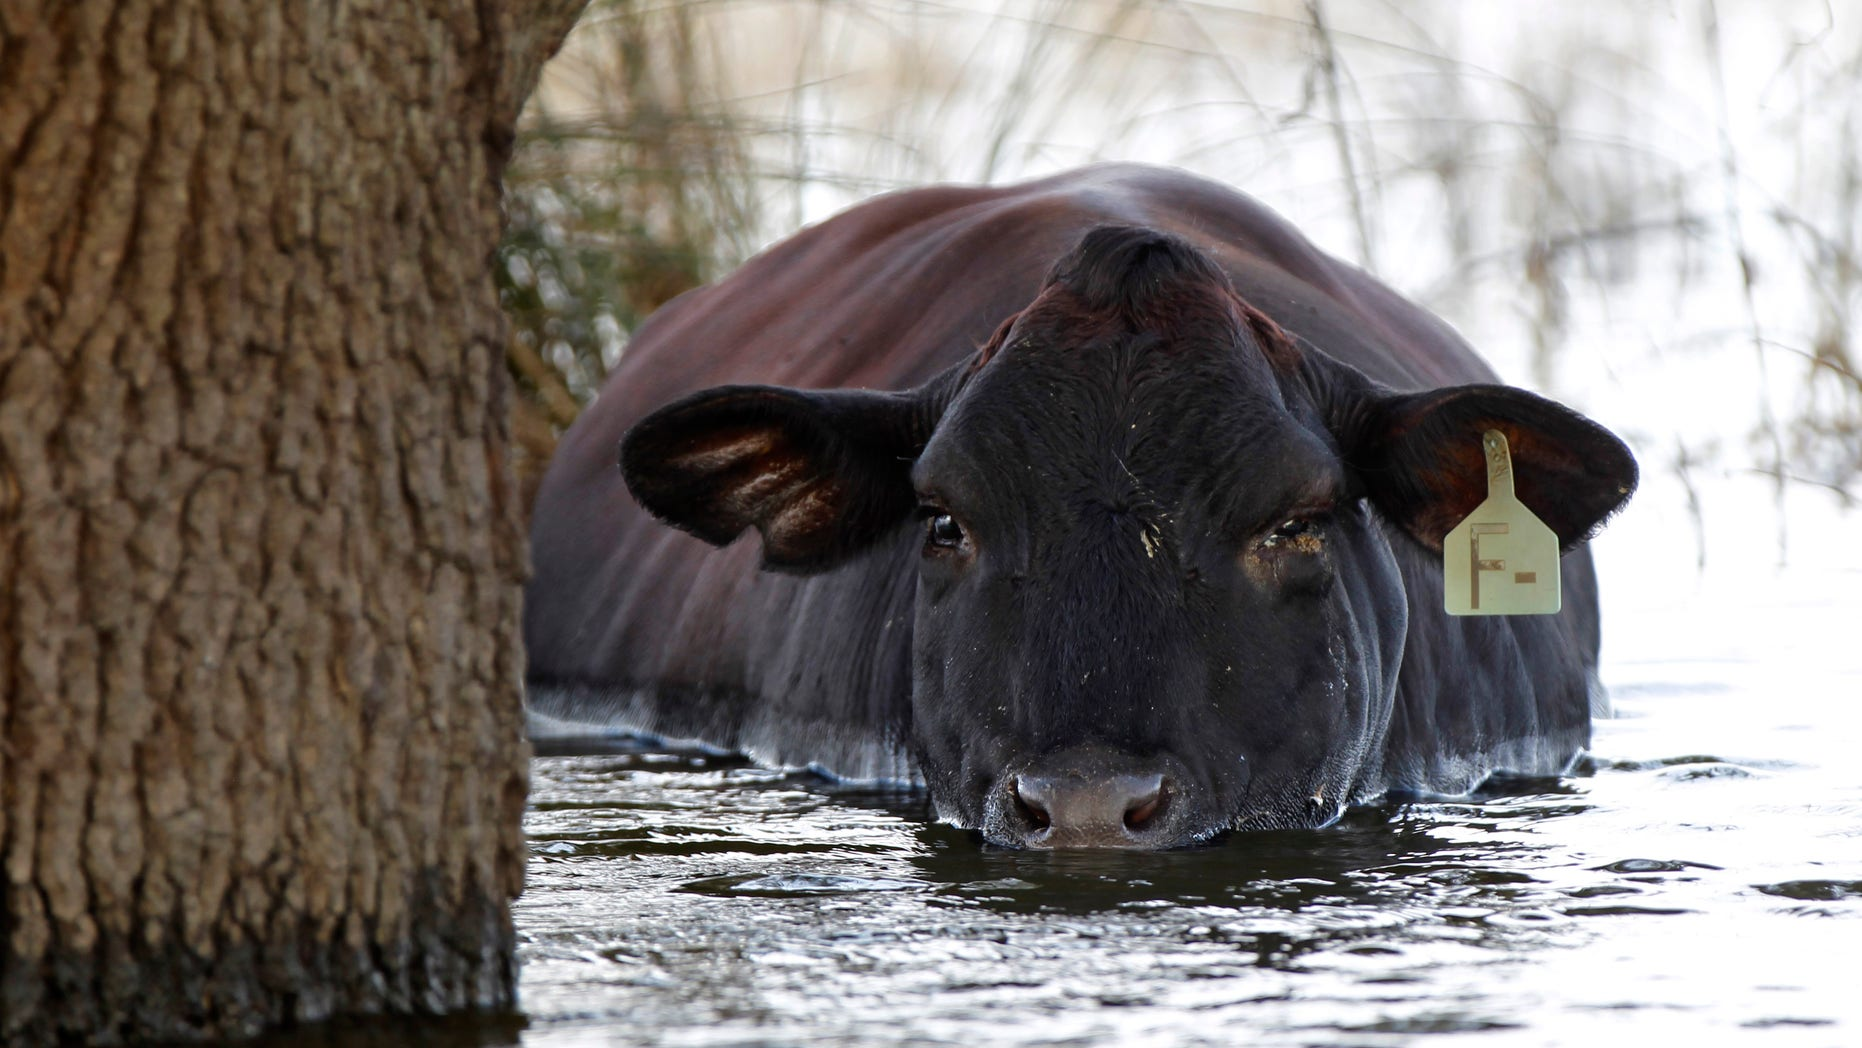 Sept. 4, 2012: In this file photo, a cow is seen stranded in floodwaters from Hurricane Isaac in Plaquemines Parish, La.